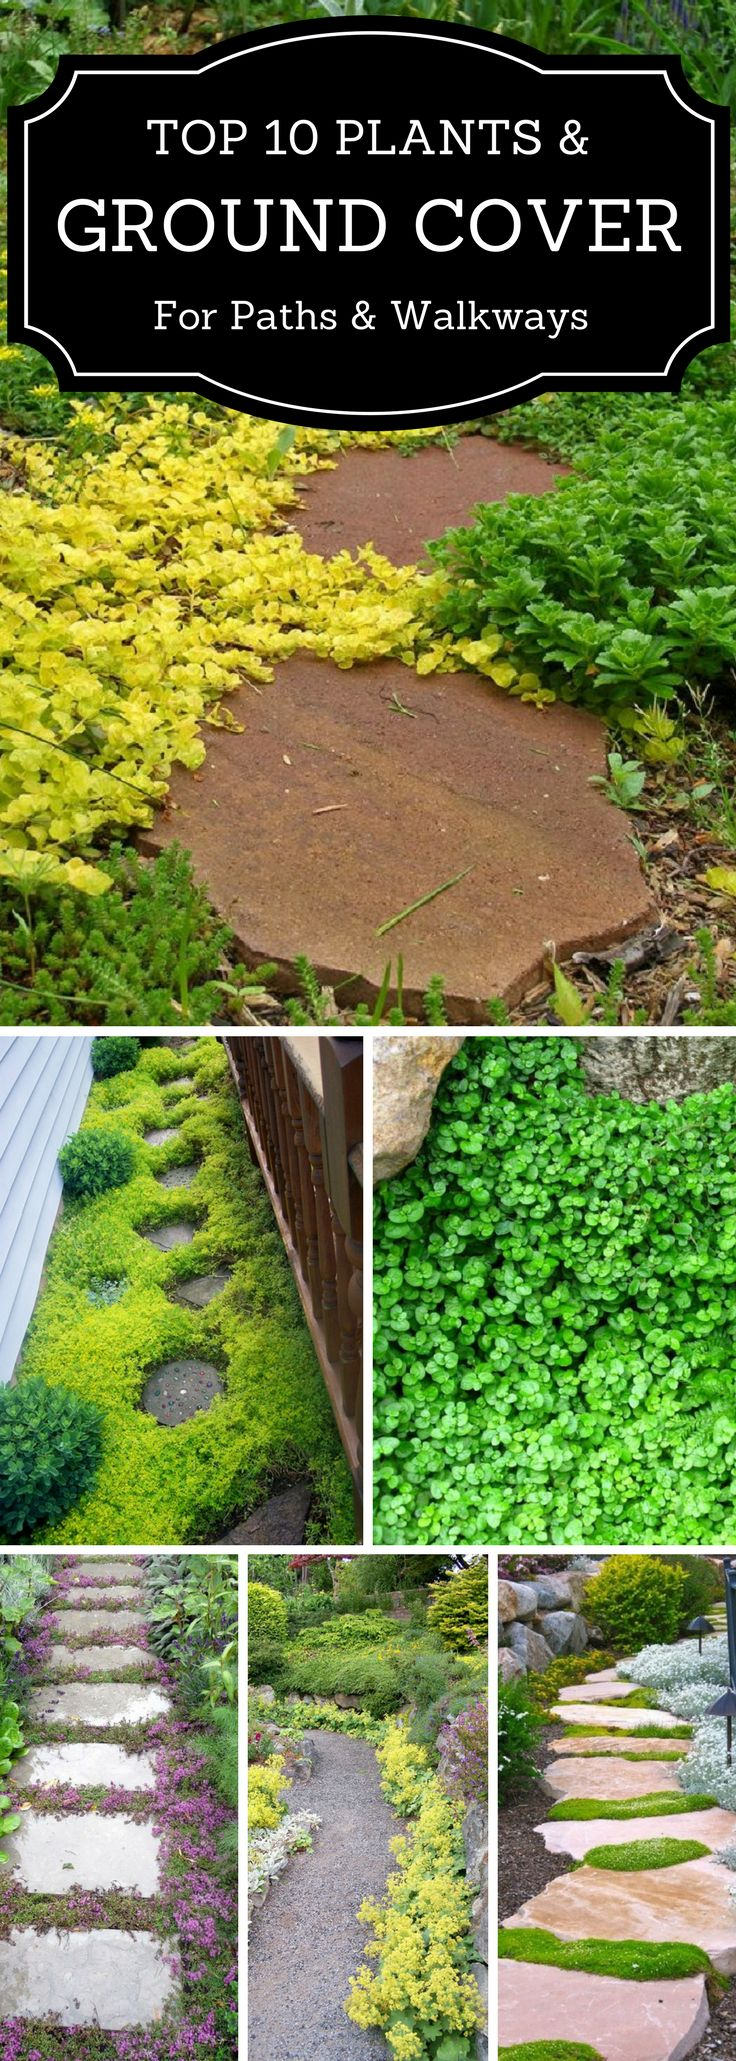 How to grow irish moss ground cover - Ground Cover Plants For Walkways And Paths